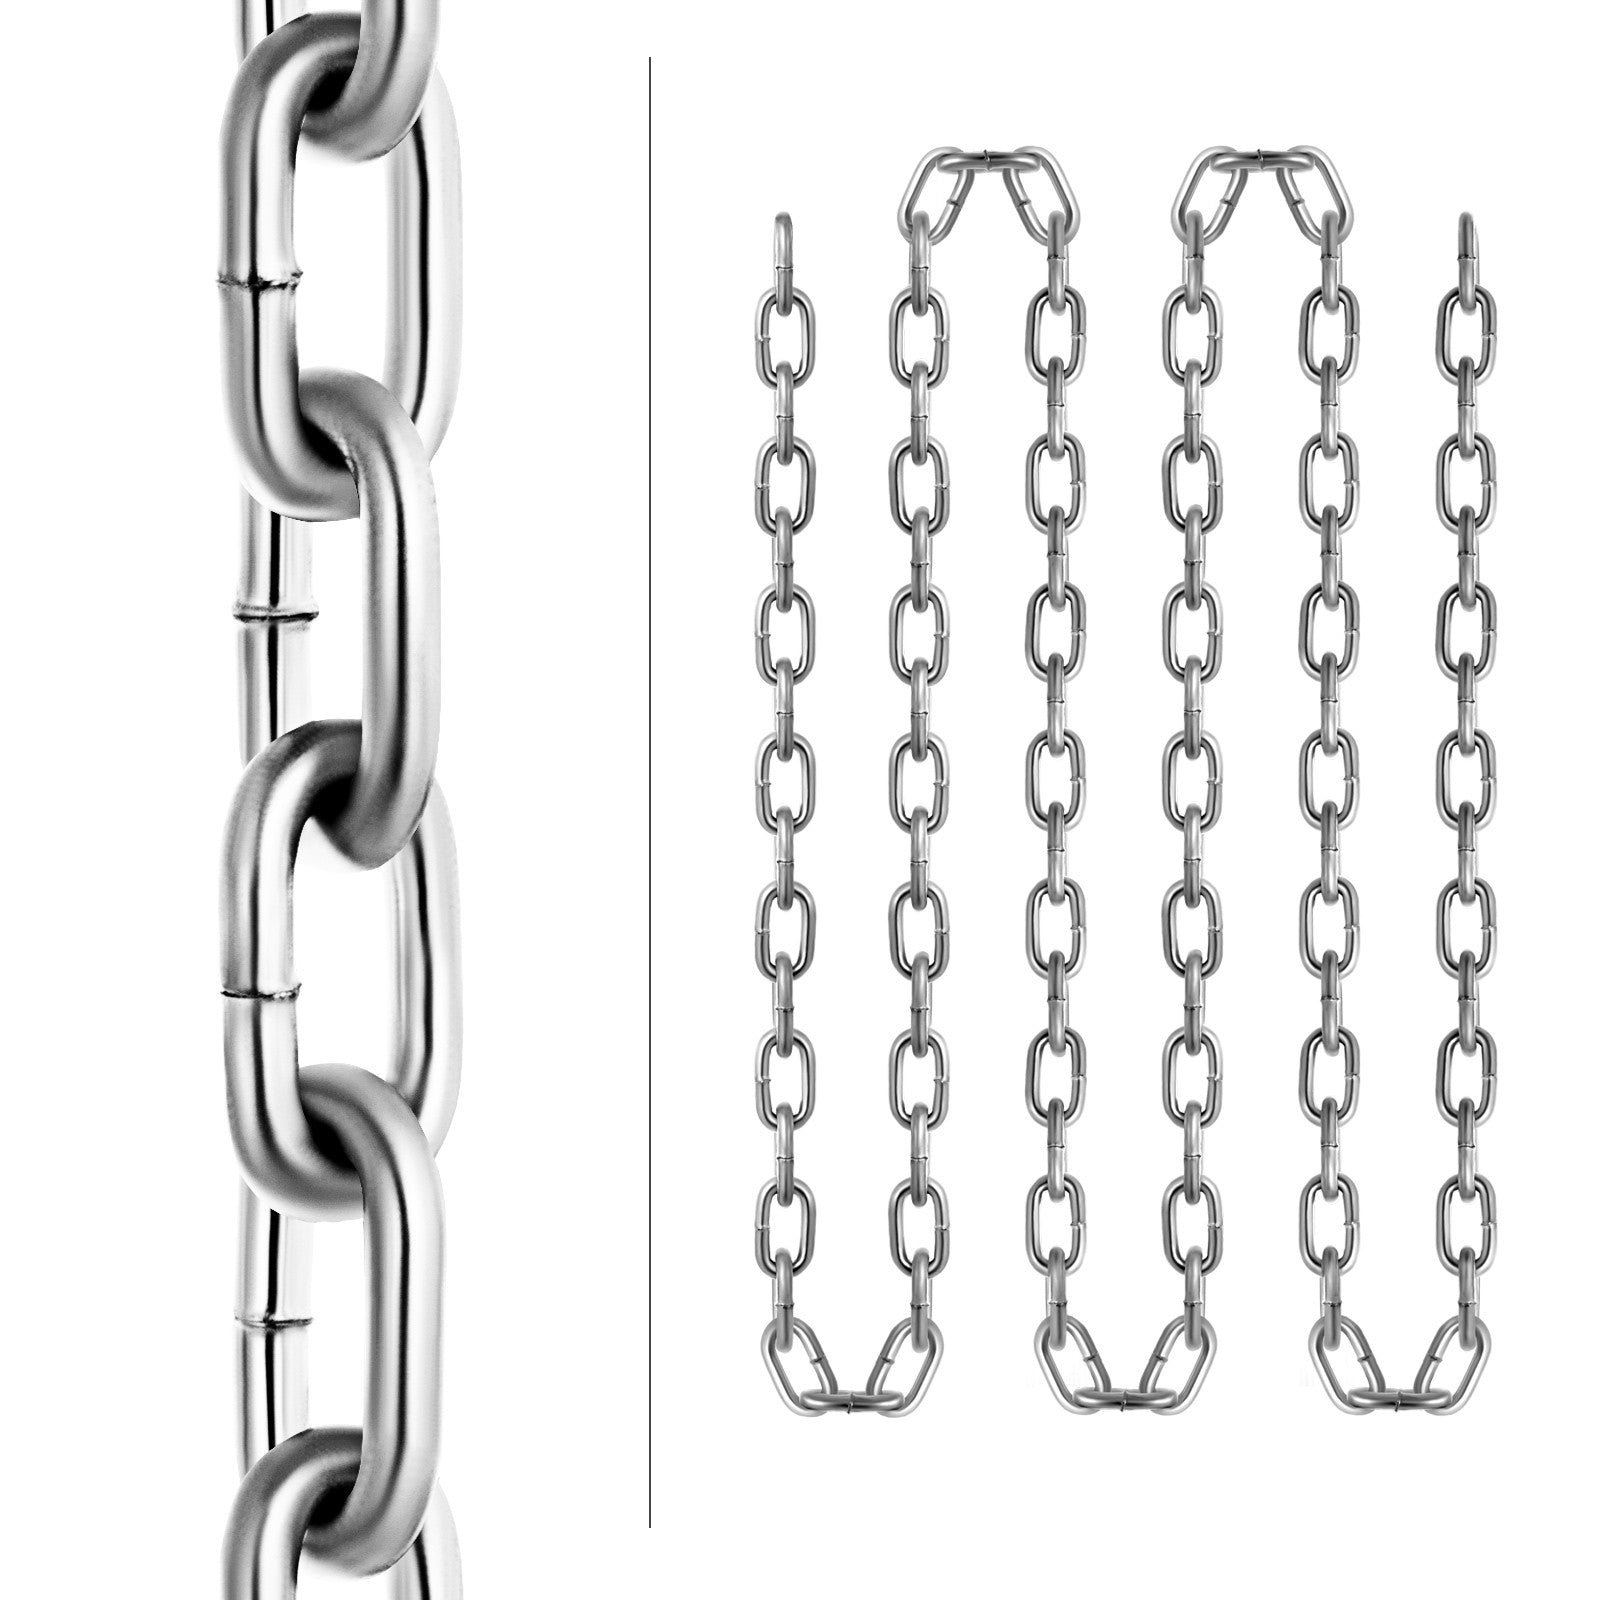 "Chain Sling G30 3/16""x250' Zinc Plated Proof Coil Chain Towing Pulling"